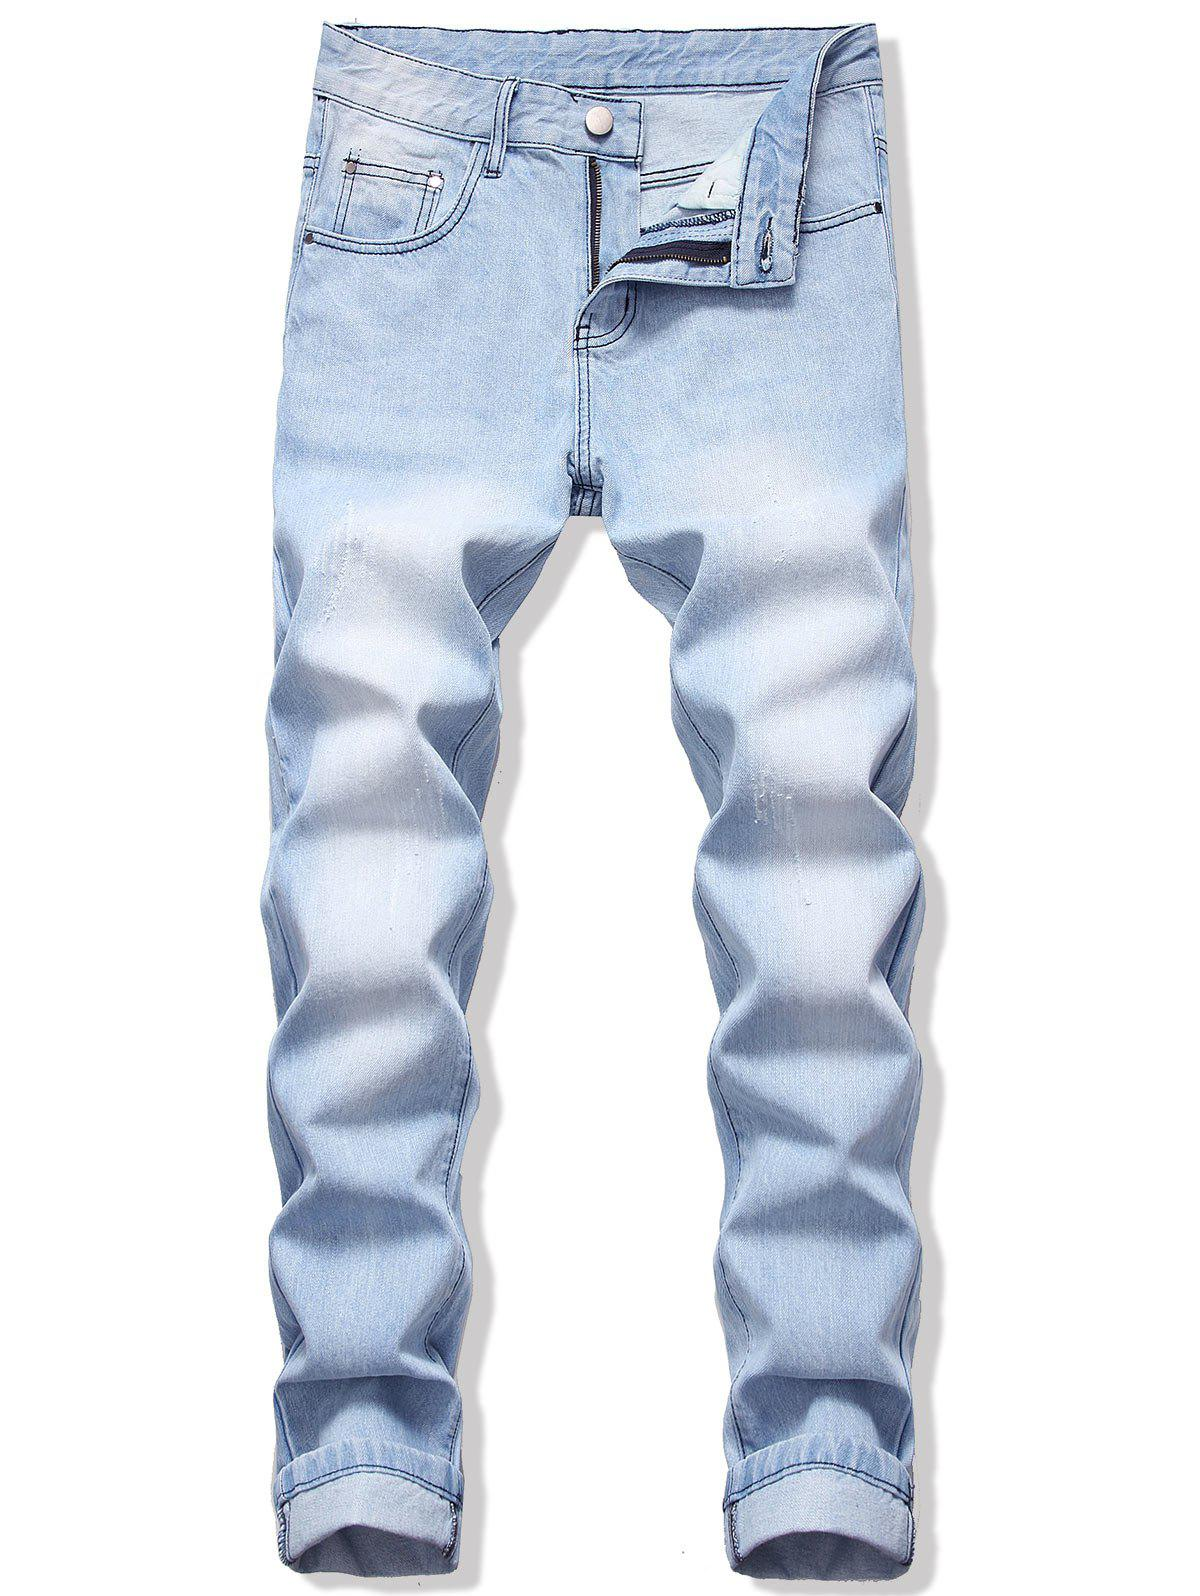 Long Straight Scratch Casual Jeans - LIGHT BLUE 32